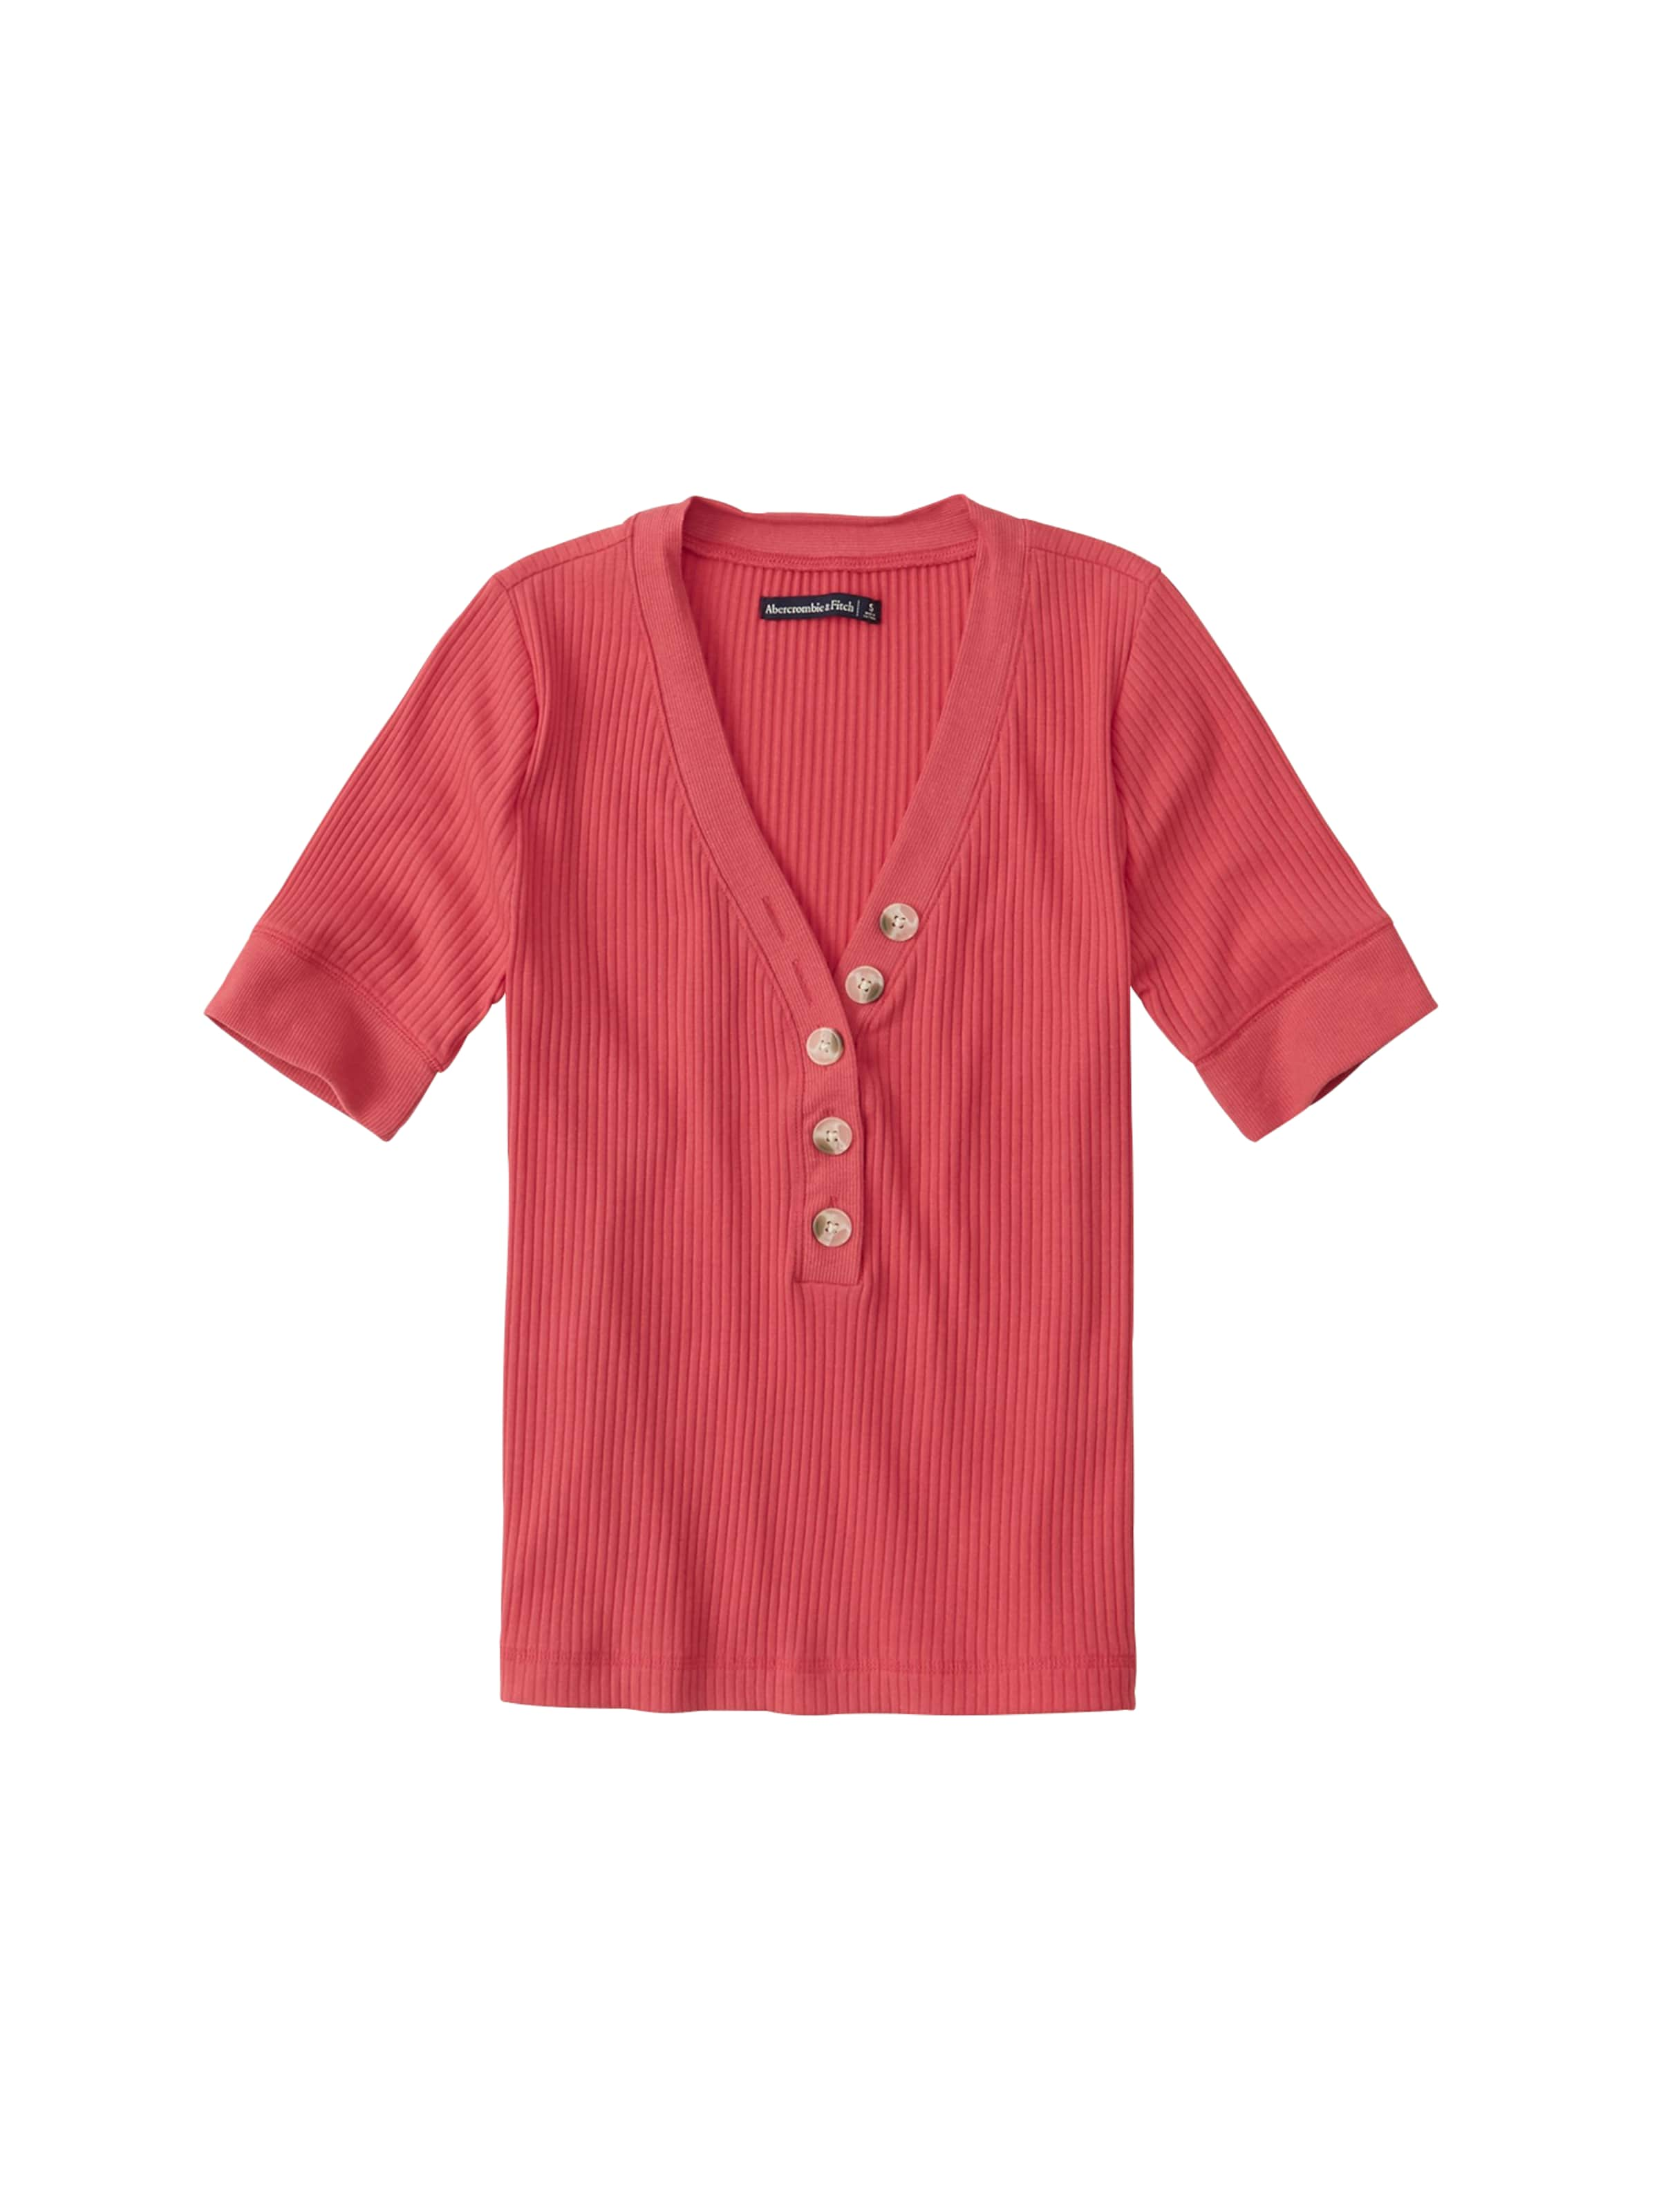 ss Fitch 'sb19 Rot Abercrombieamp; Henley' In Shirt OkXn0wP8